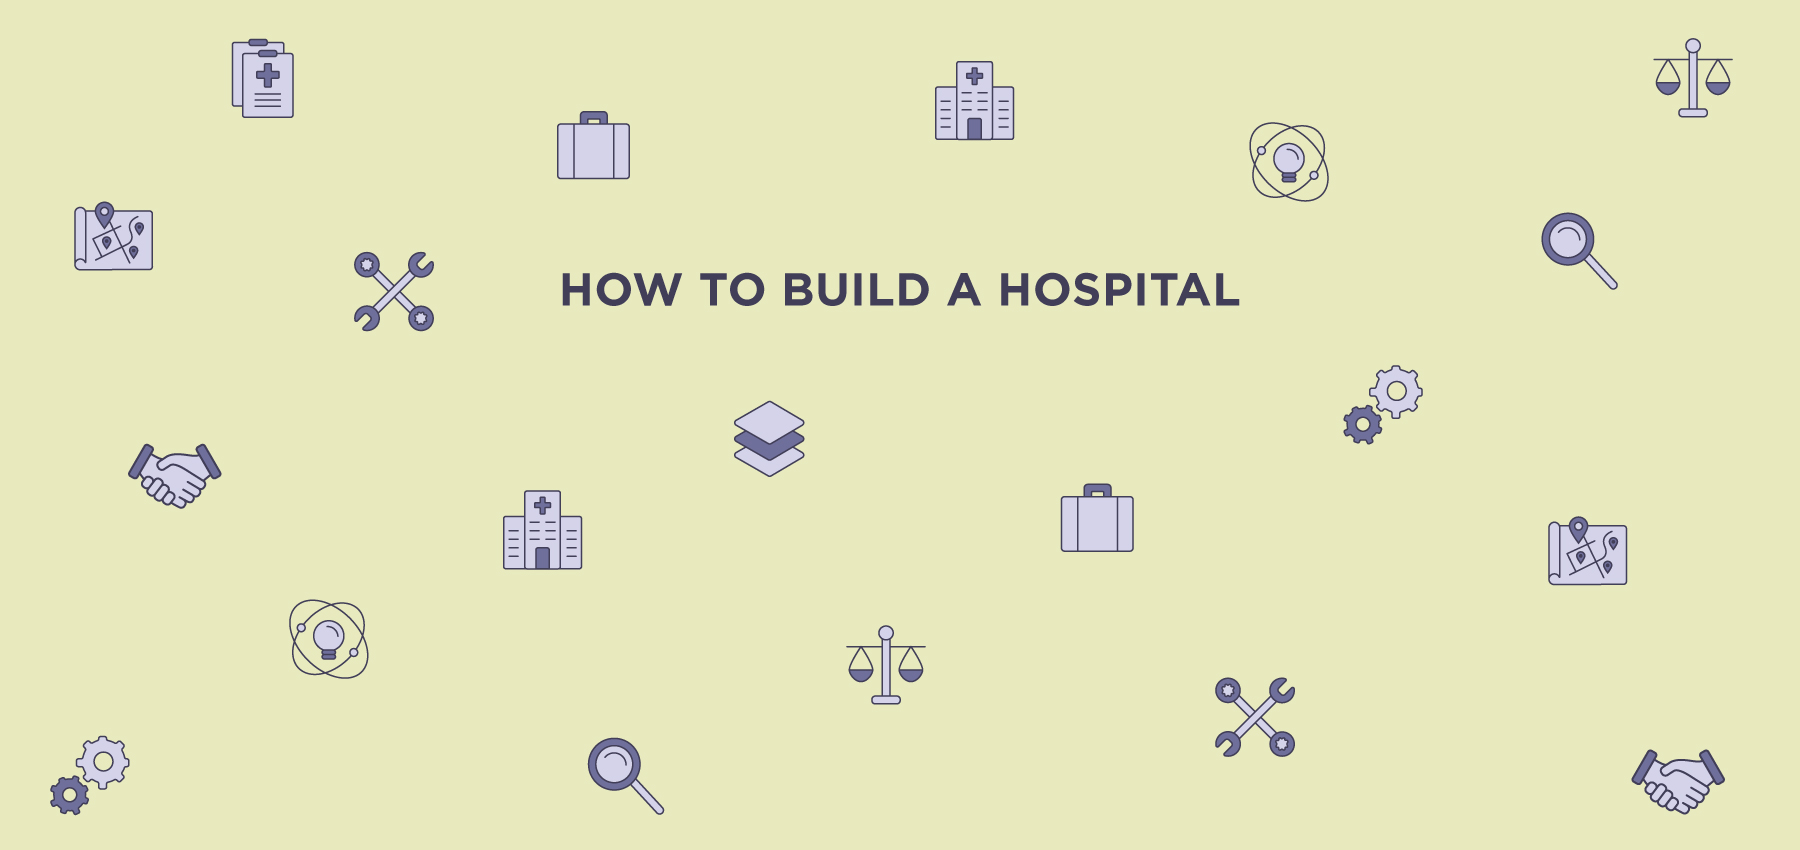 How to build a hospital